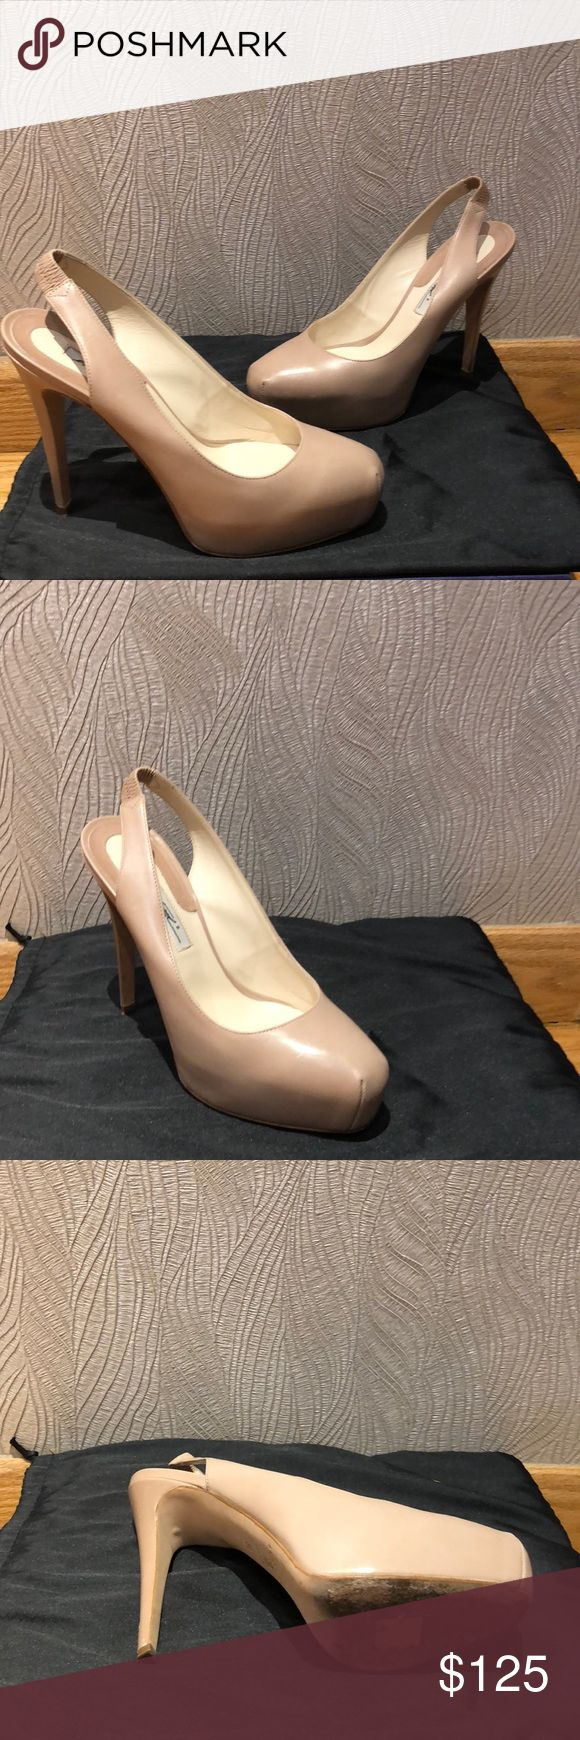 Brian Atwood pumps Beautiful cream color authentic Brian Atwood pumps with 1 1/2 plateau in front and 5 inch heel Brian Atwood Shoes Heels #brianatwoodheelsbeautiful